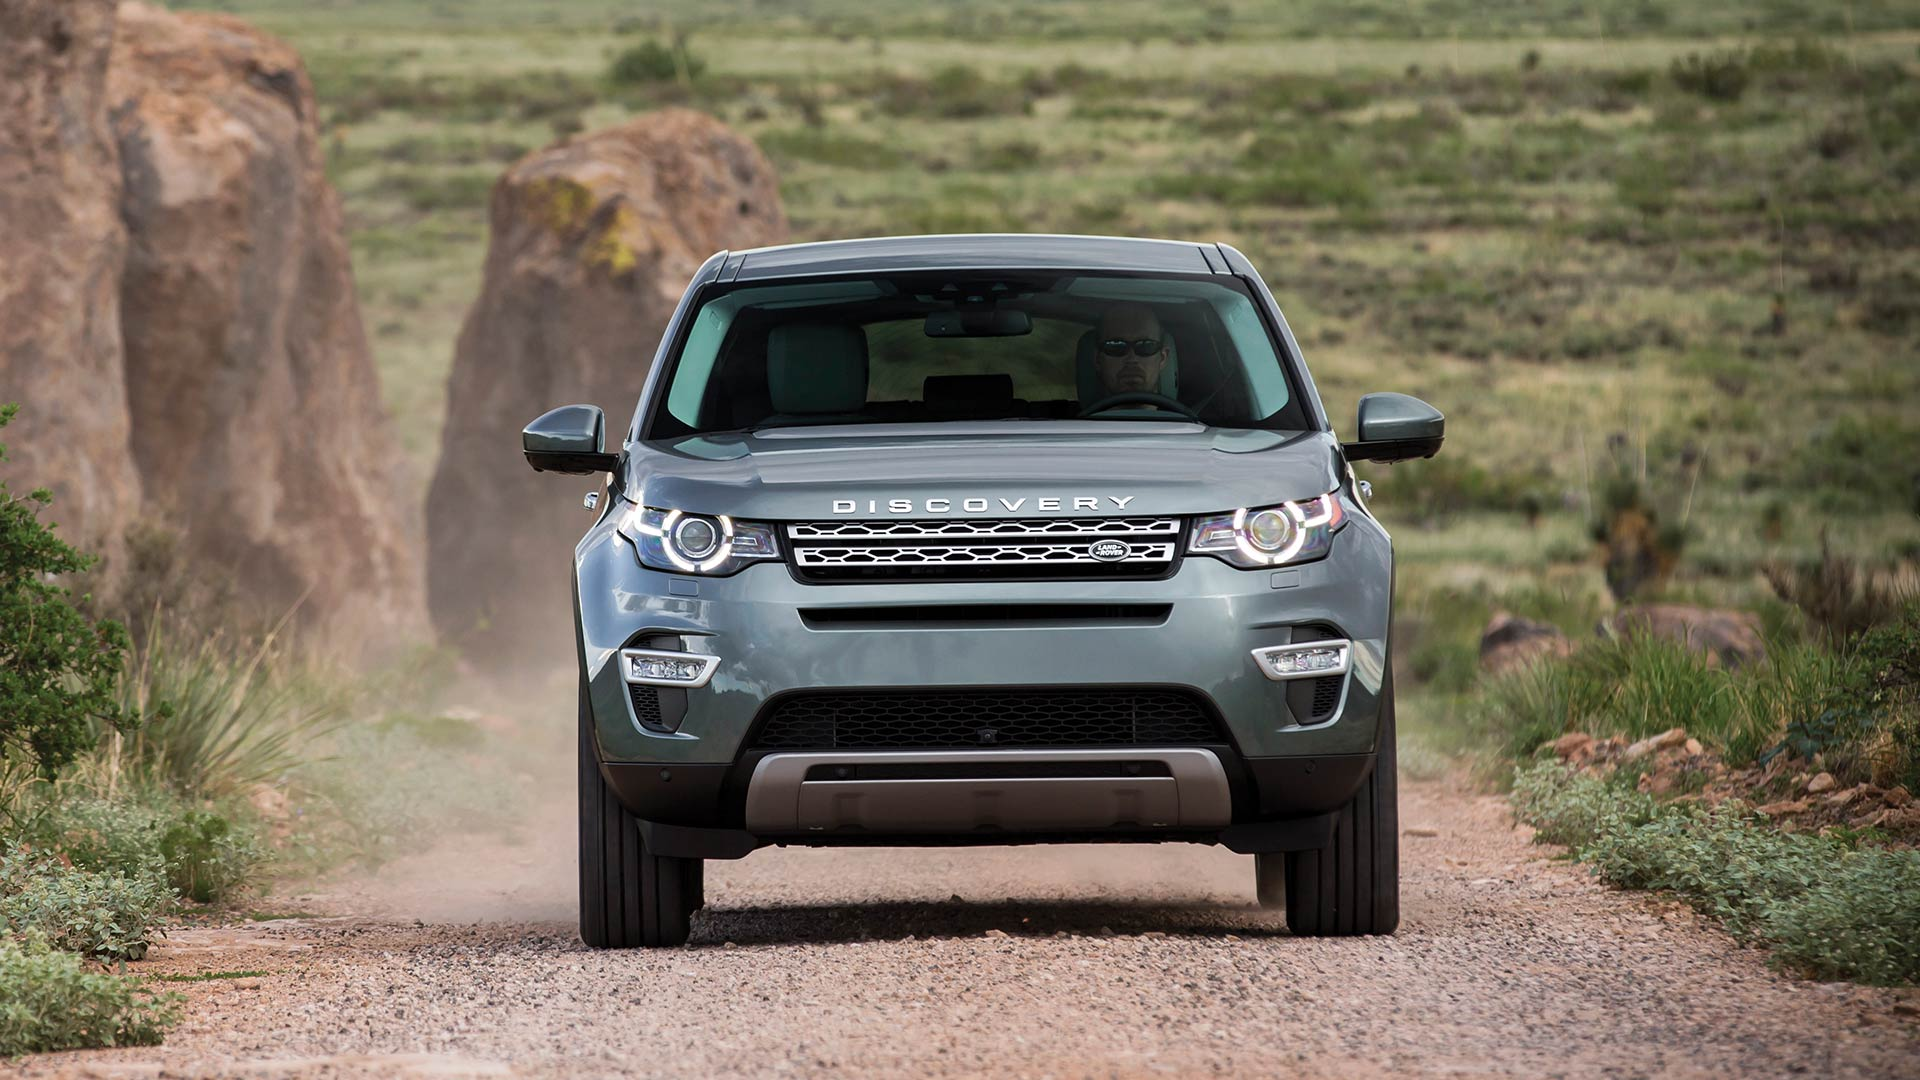 latest pin of price buying sport land the landrover prices discovery get find reviews rover